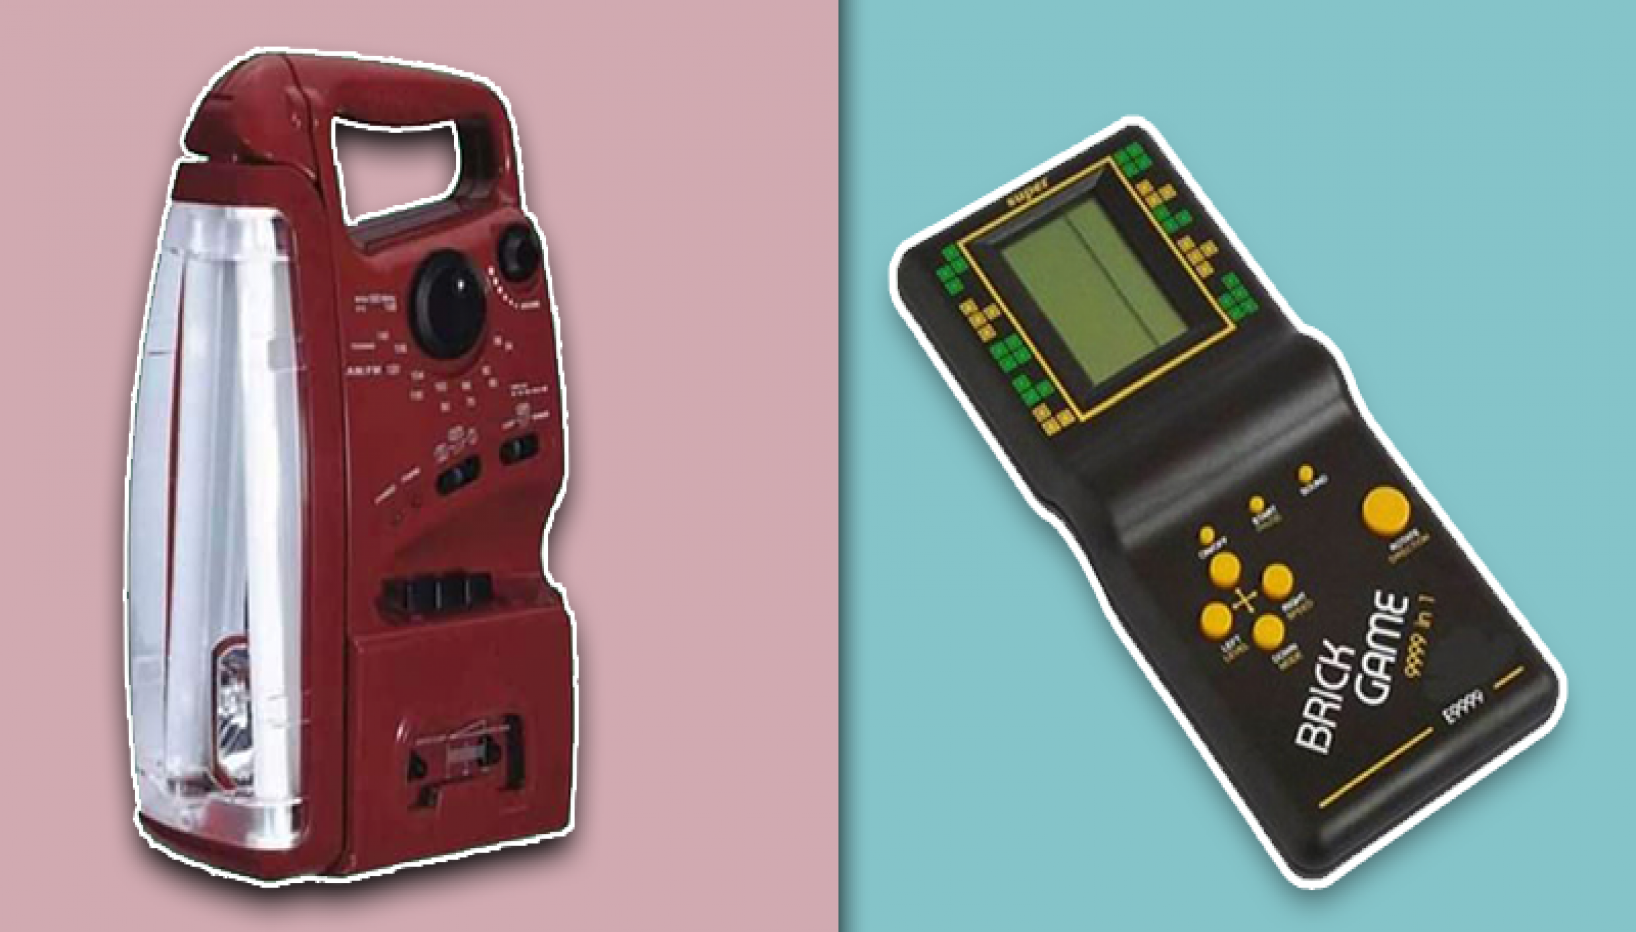 15 Images That Will Take You Back To Your Childhood